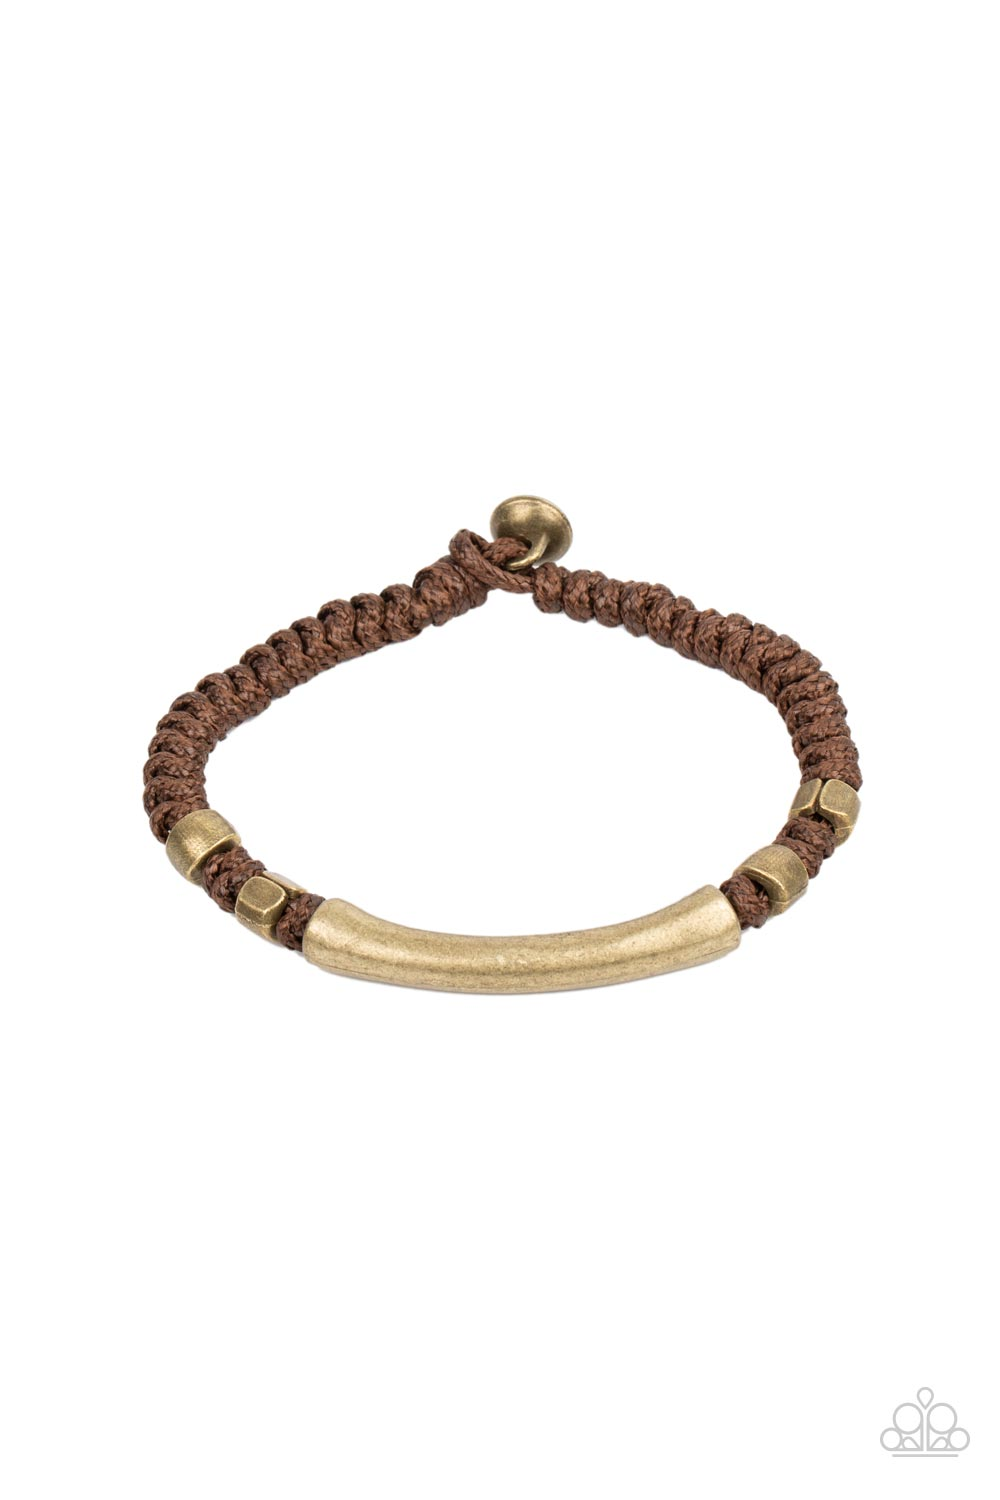 Paparazzi Accessories:  Grounded in Grit - Brown (2052)